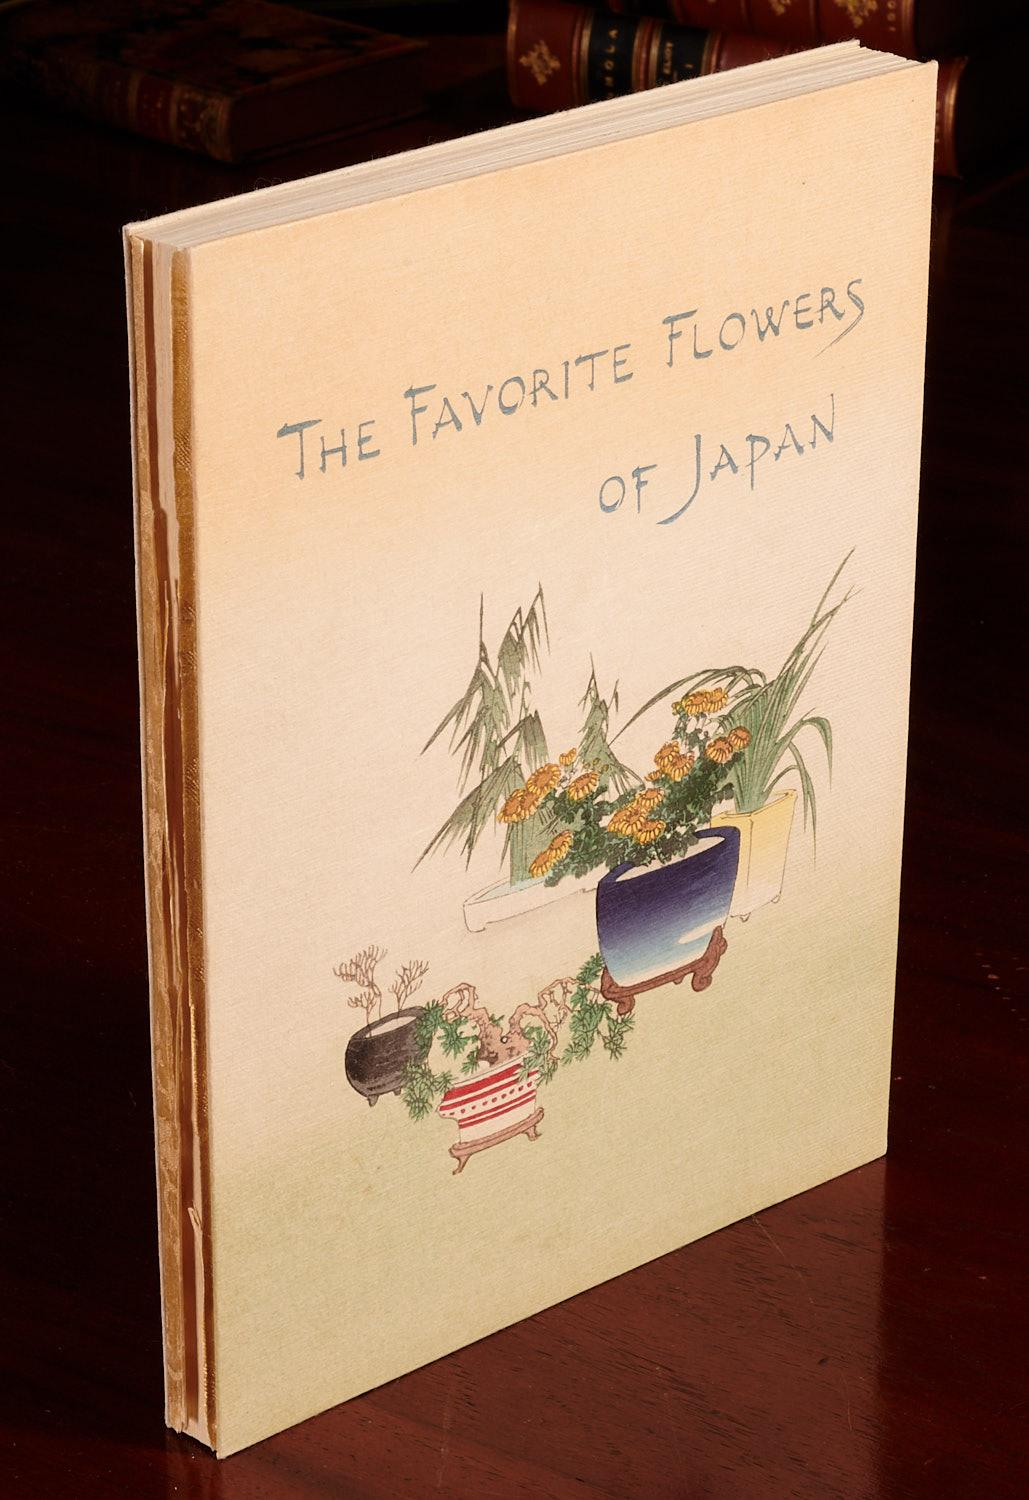 BOOKS: Hasegawa 1935 Favorite Flowers of Japan | Millea Brothers